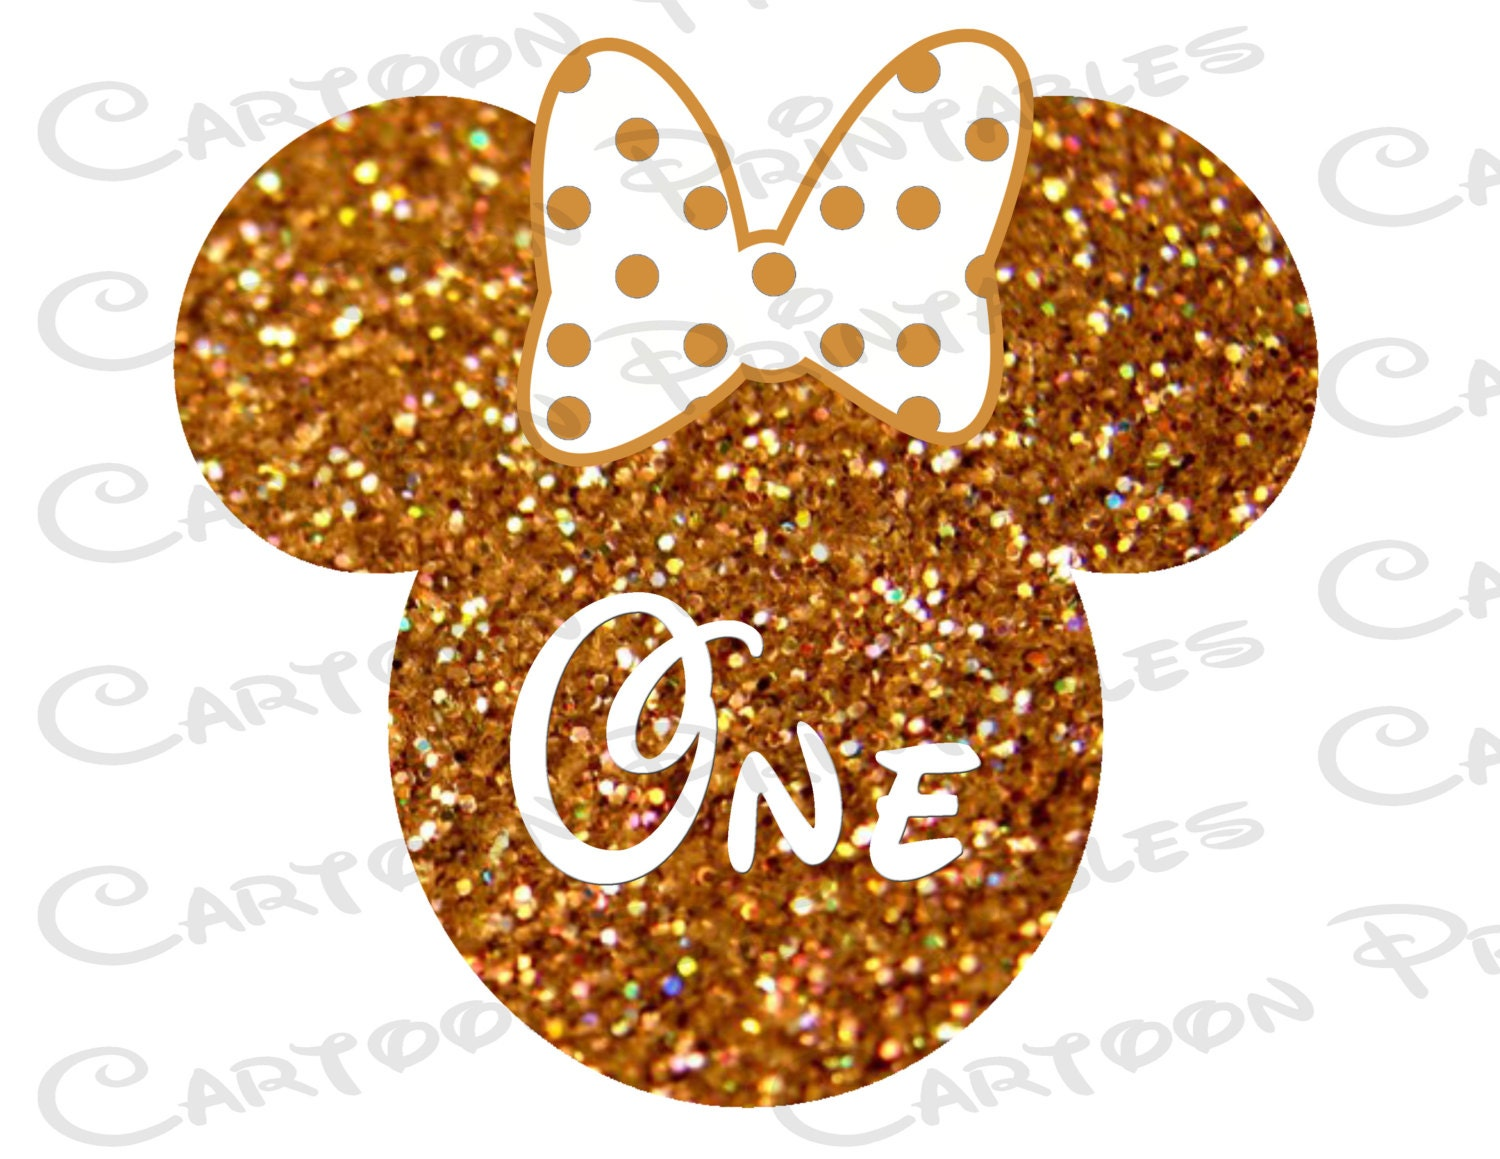 Minnie Mouse Head Gold Glitter Number One IMAGE Use as Printable ...